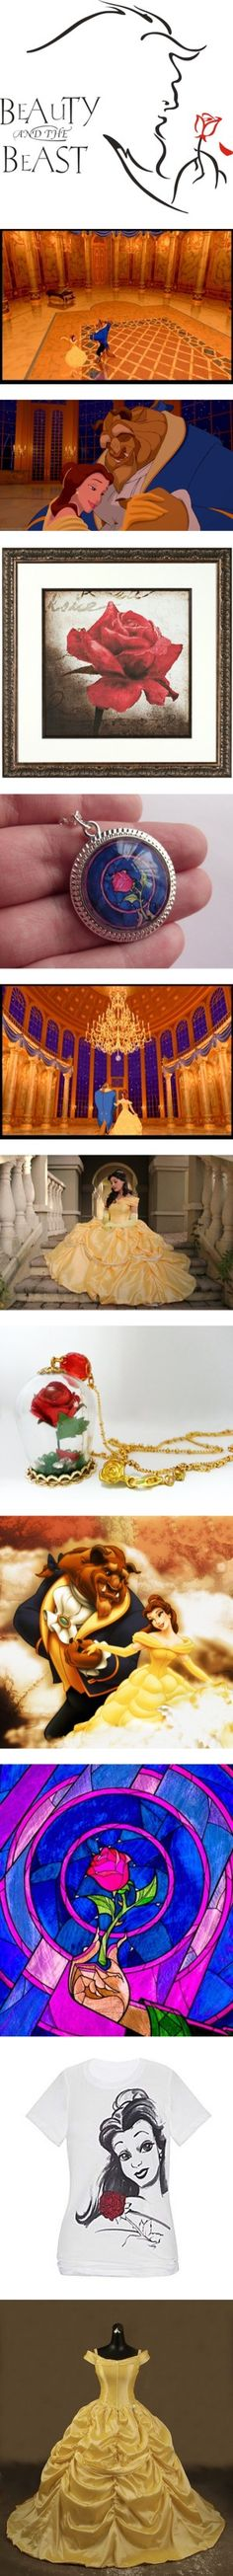 """""""tale as old as time beauty and the beast"""" by beautyandthetardis ❤ liked on Polyvore"""